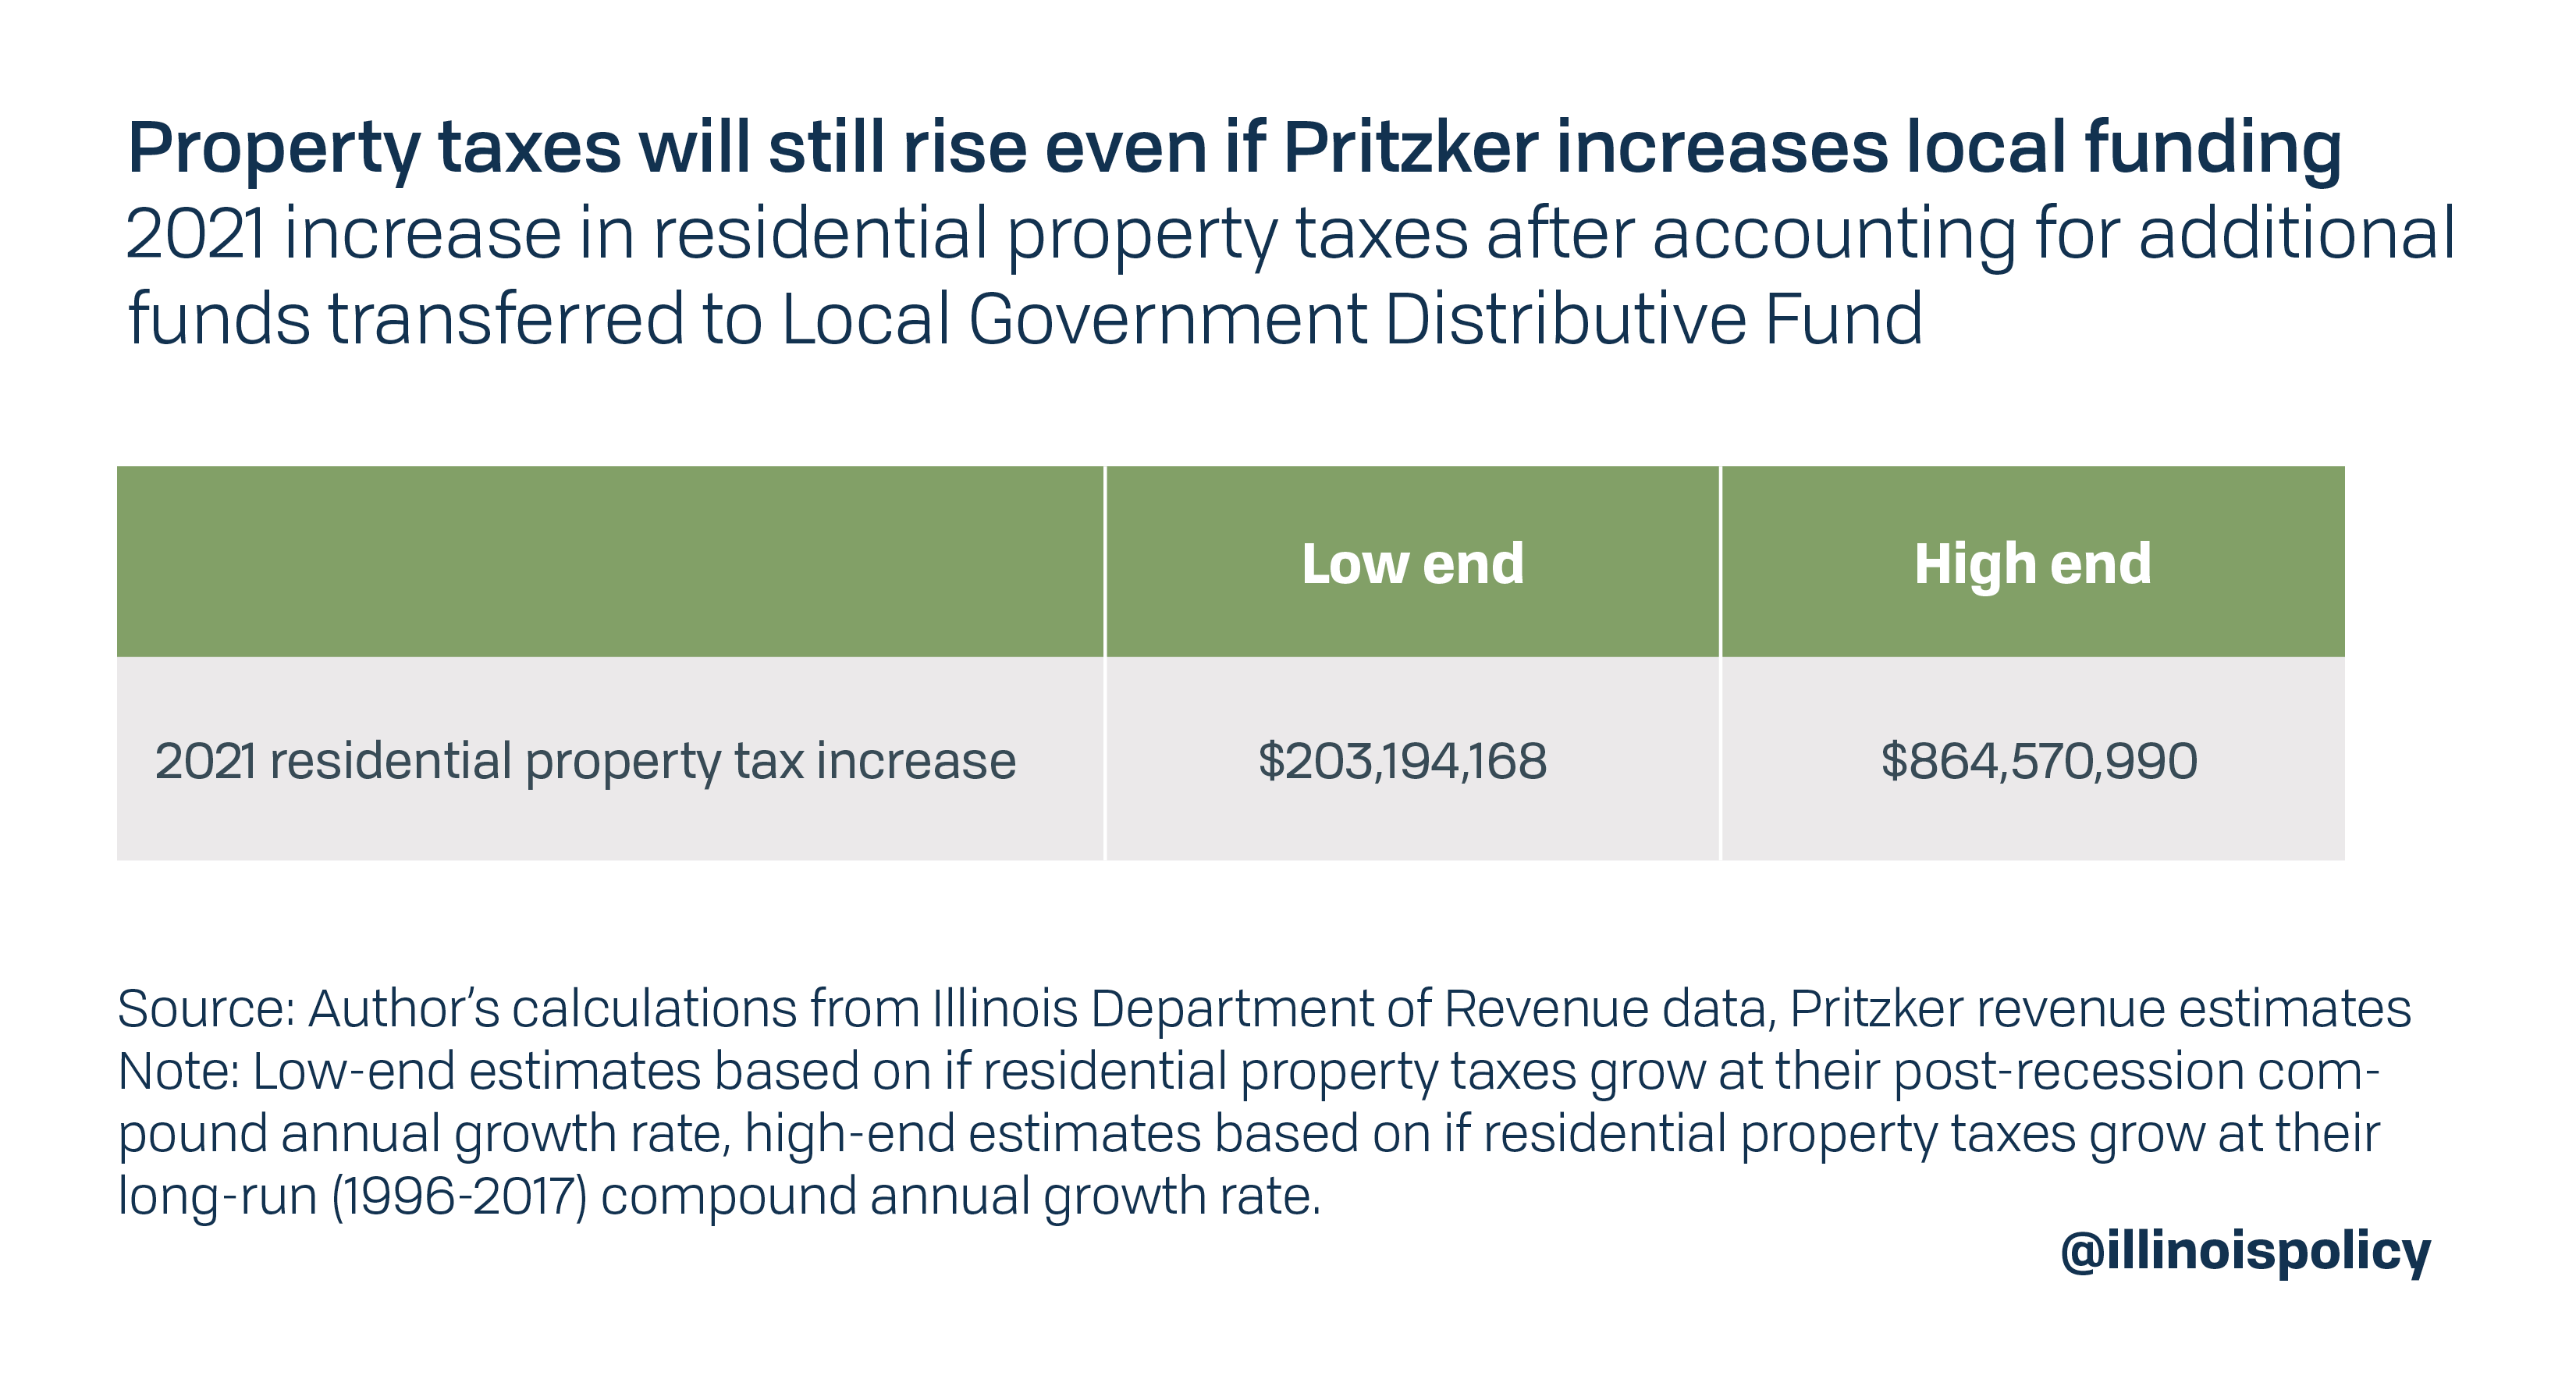 Property taxes will still rise even if Pritzker increases local funding